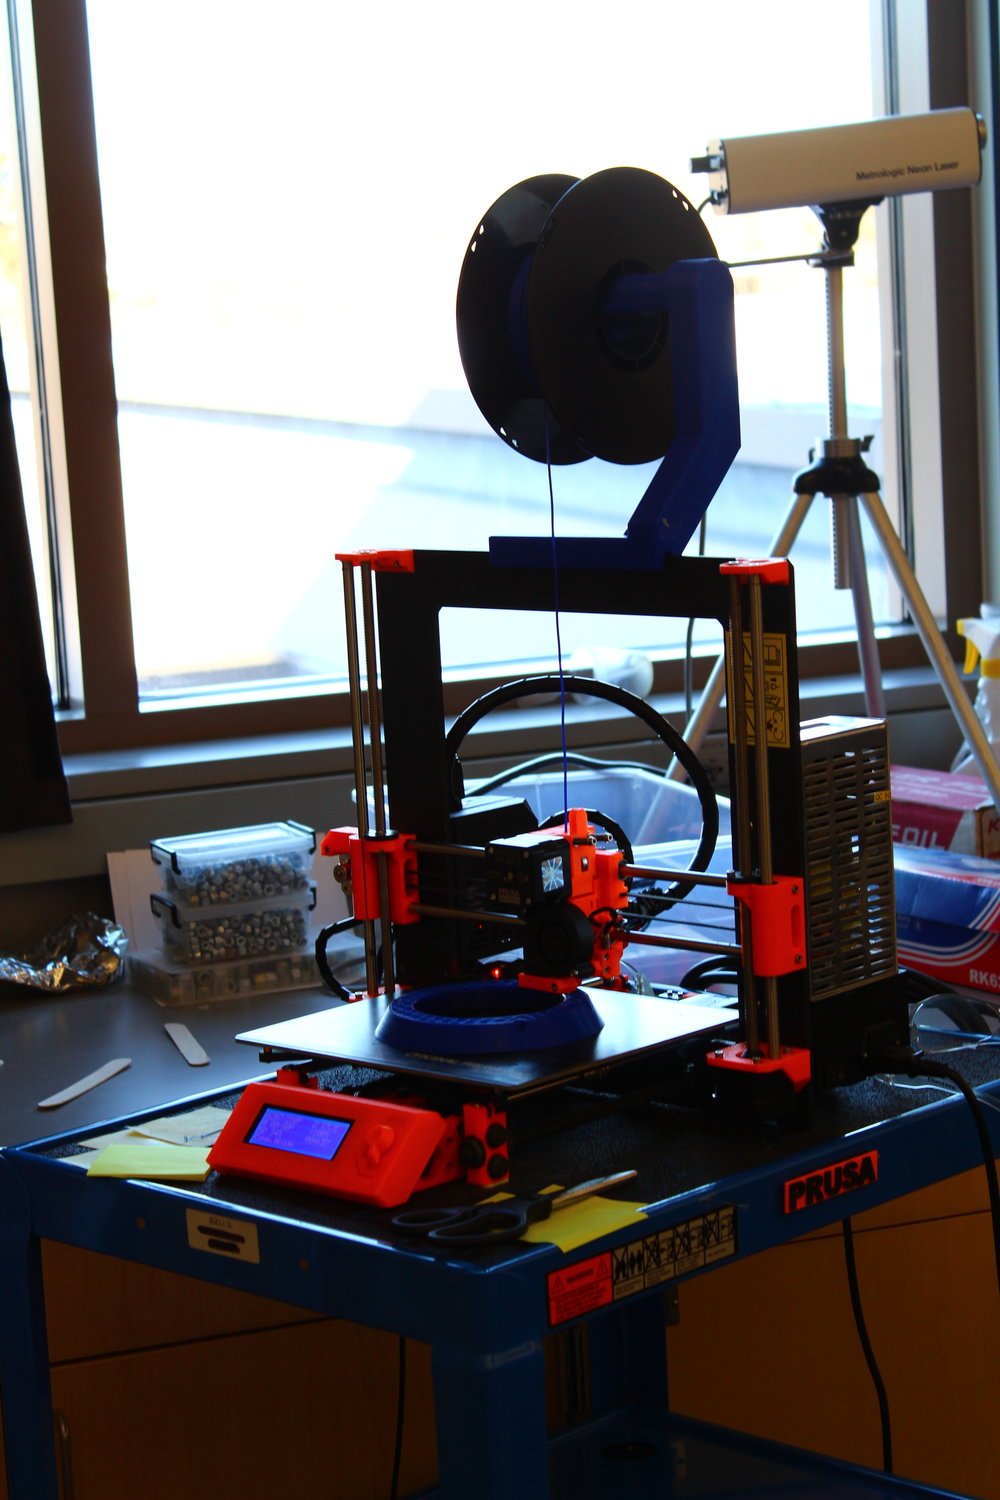 Our friend, the 3D printer